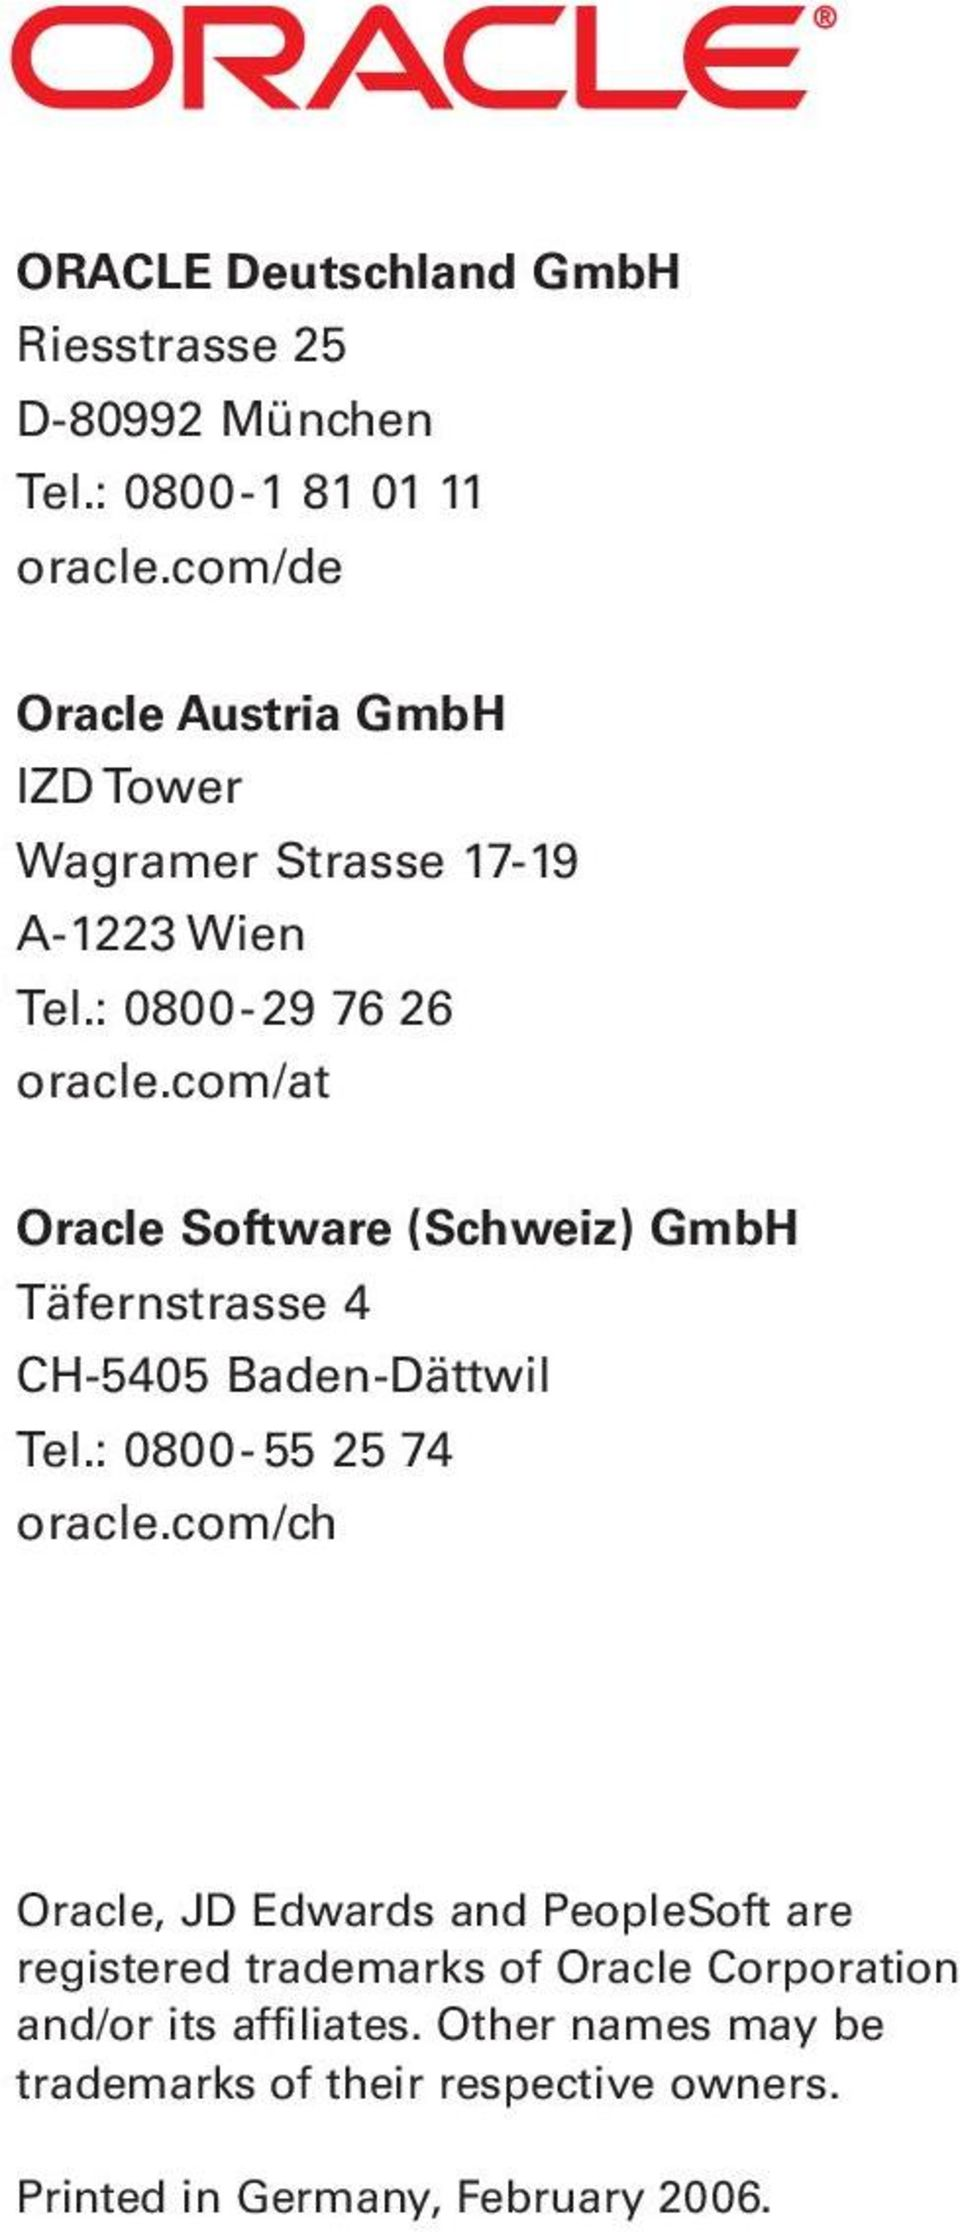 com/at Oracle Software (Schweiz) GmbH Täfernstrasse 4 CH-5405 Baden-Dättwil Tel.: 0800-55 25 74 oracle.